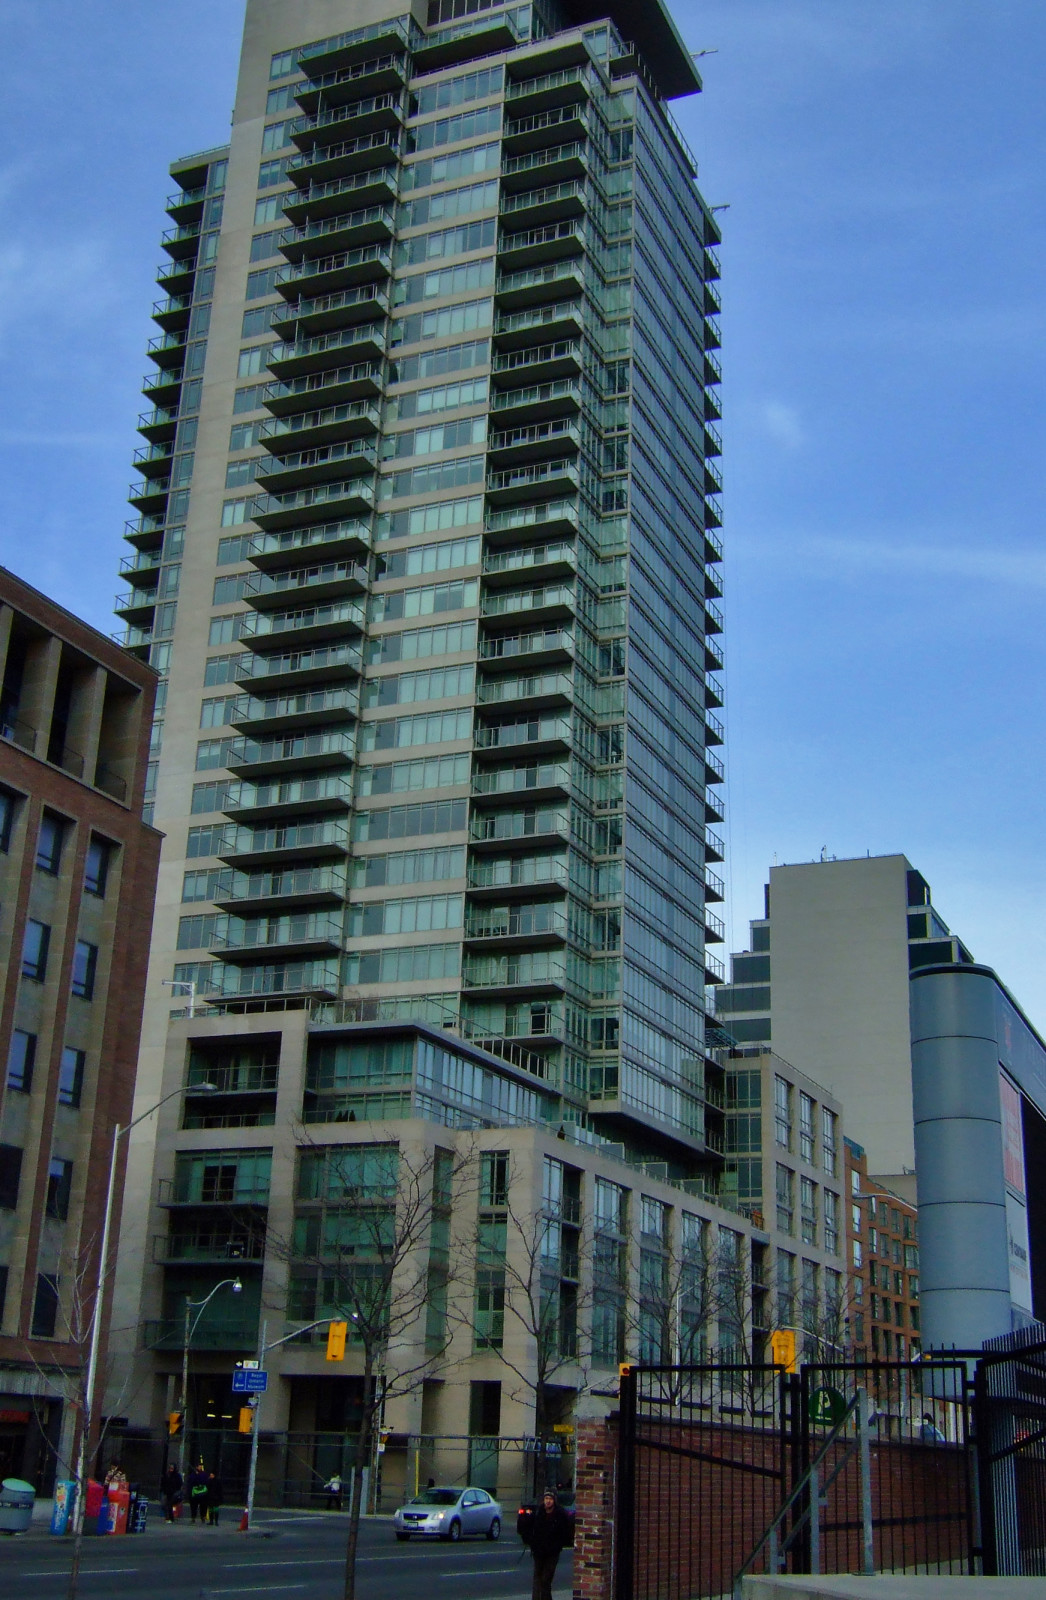 """Figure 6. One Bedford at Bloor, completed in 2011, was the subject of considerable controversy by residents and existing businesses before pre-construction demolition began in late 2006. Residents' concerns of excessive height (relative to existing built form) and lost business were allayed, allowing the project to proceed. No inscription of the """"One Bedford at Bloor"""" toponym remains. [Idlewild]"""